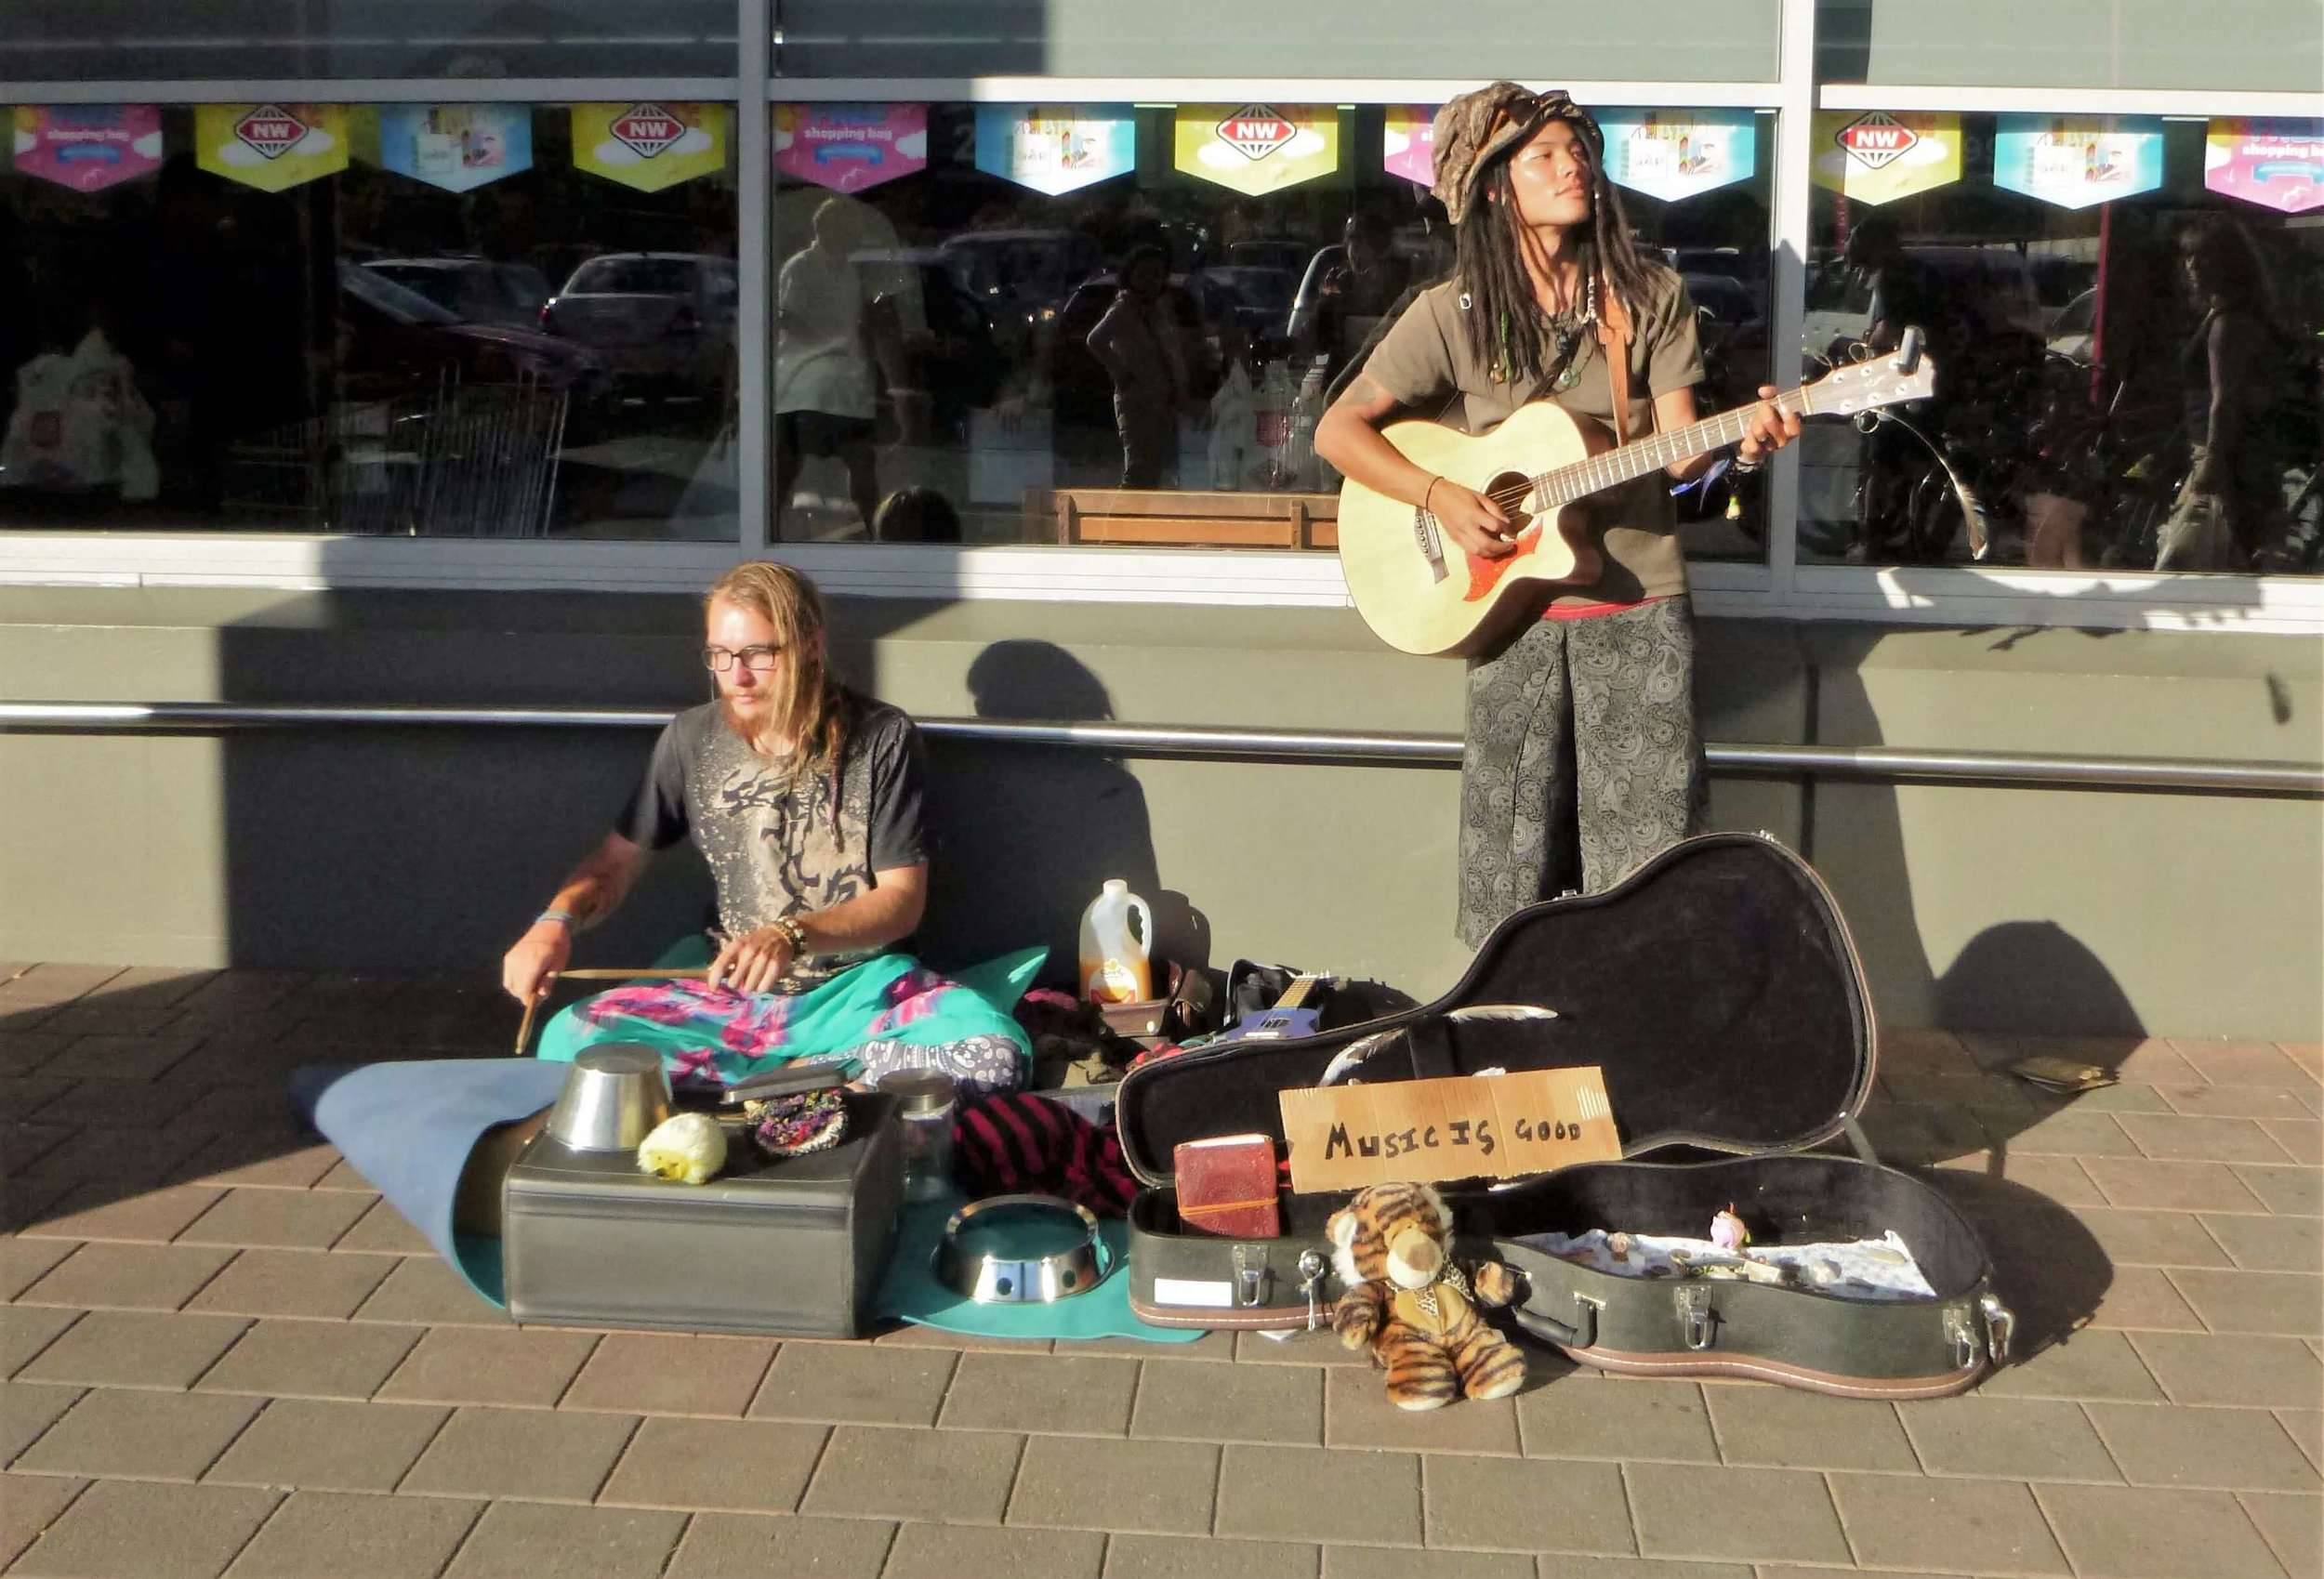 Travel the world on a budget busking